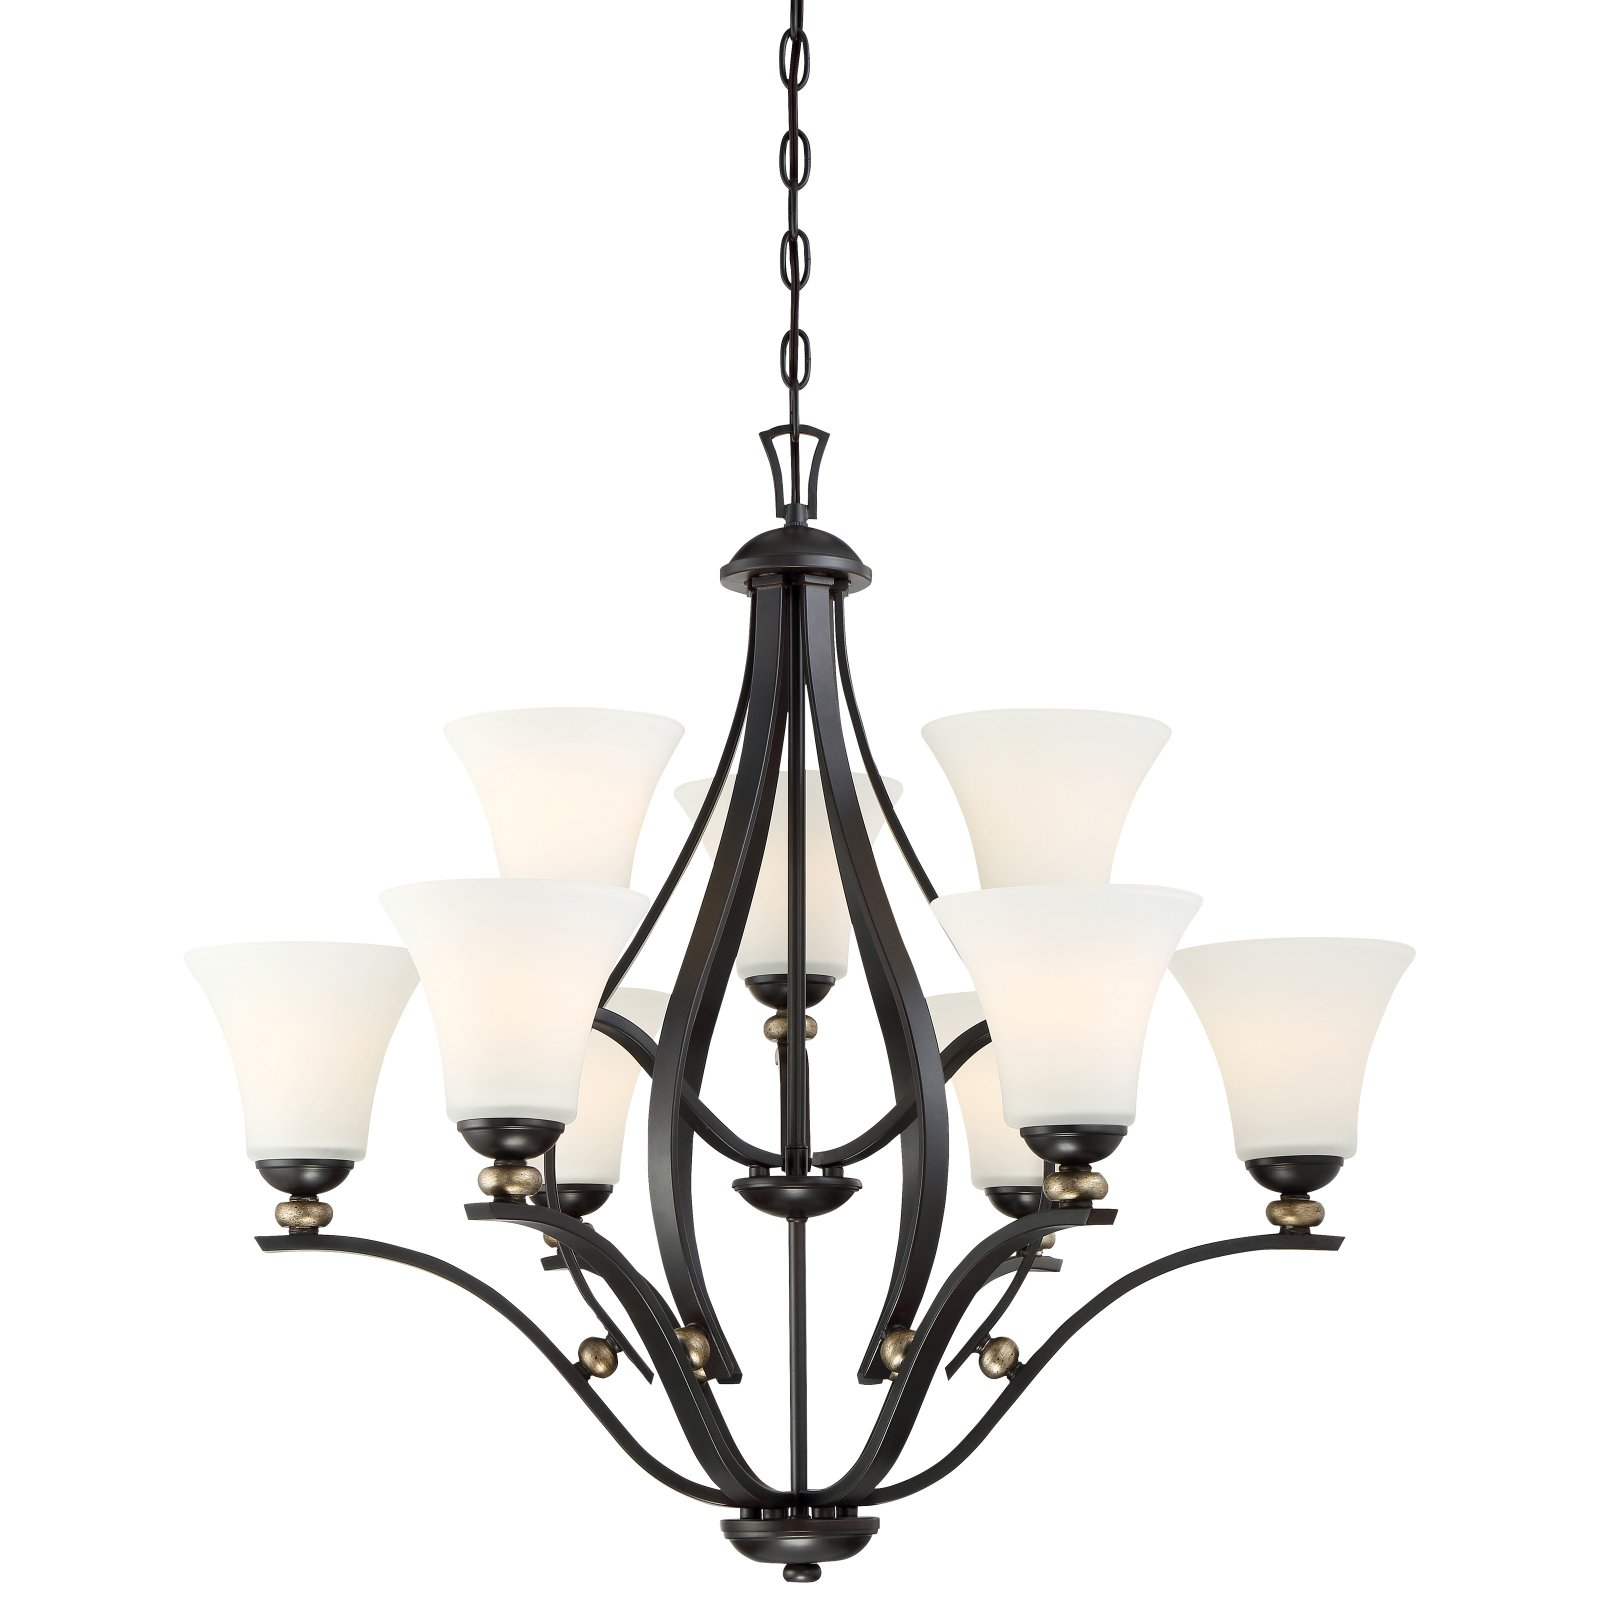 Minka Lavery Shadowglen 9 Light Chandelier - Lathan Bronze with Gold Highlights